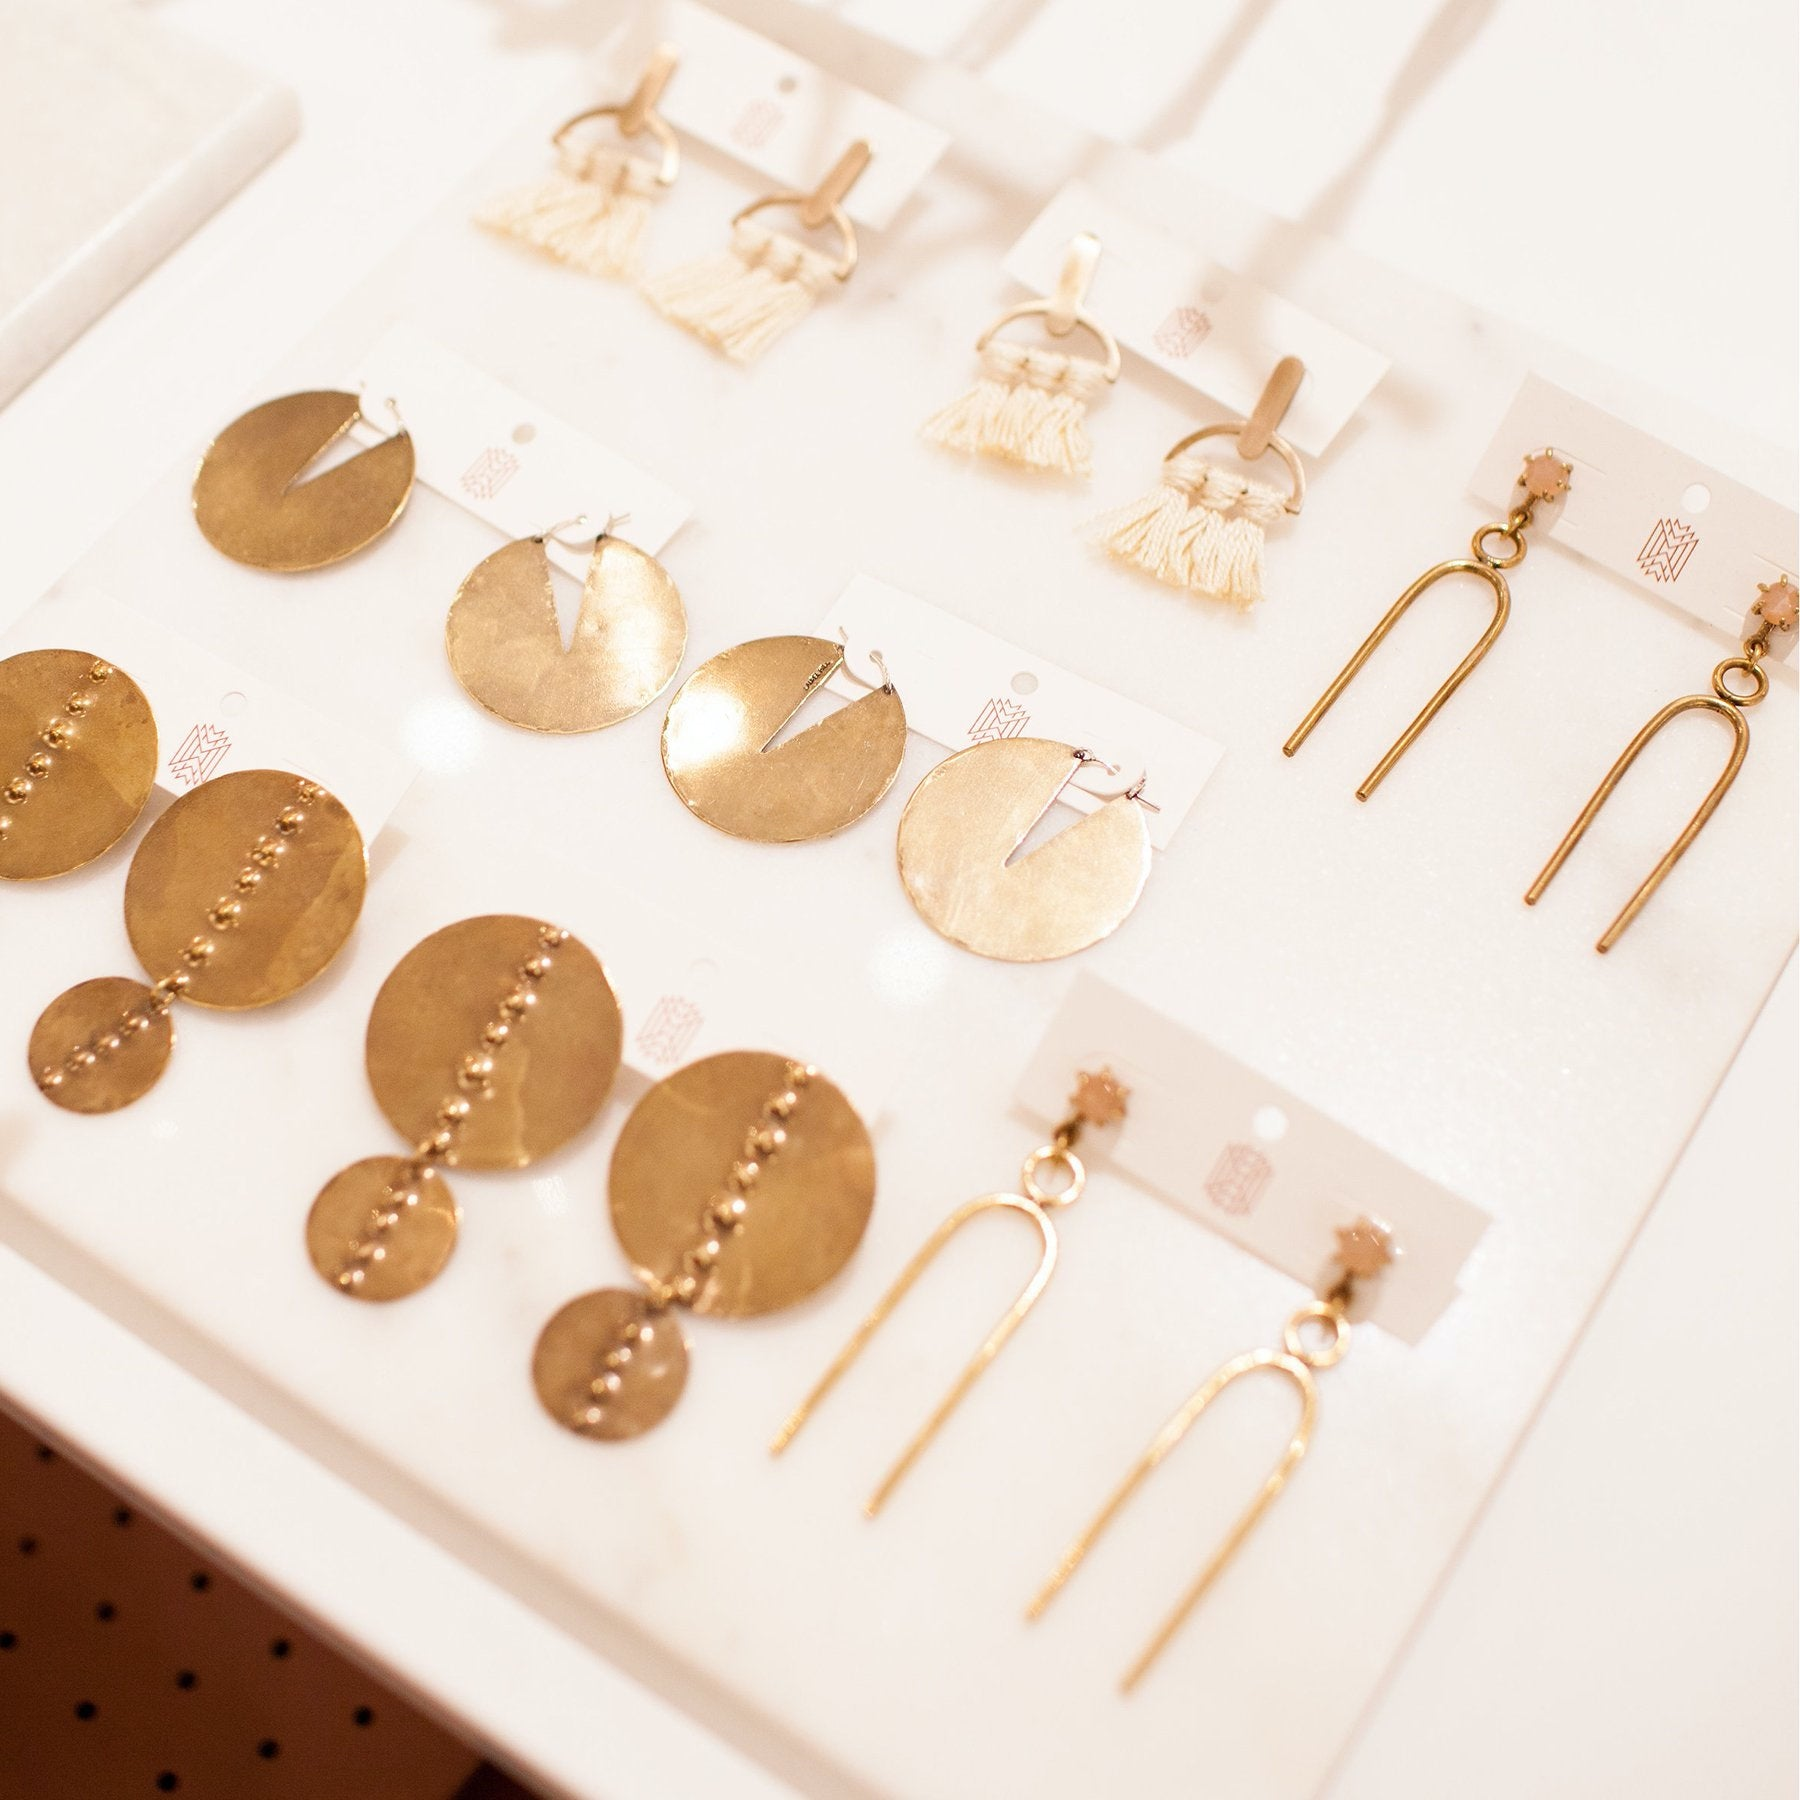 Gold jewelry arranged in a display